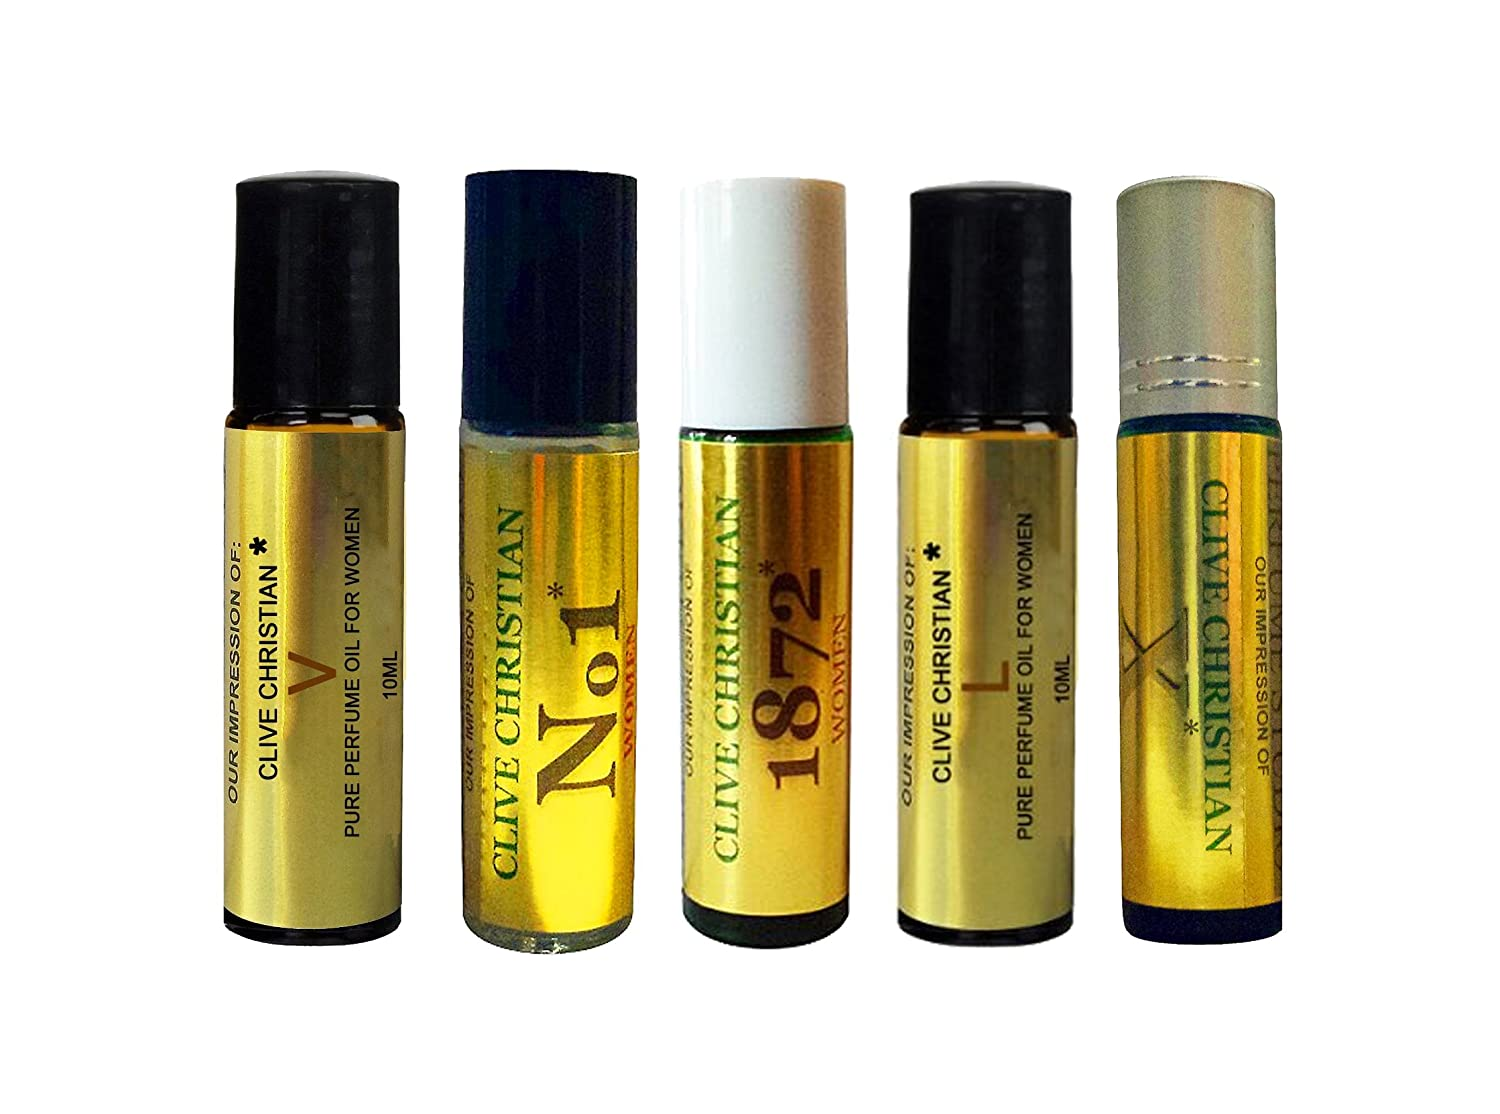 5 Piece 10ml Roll On Set of Clive-Ch IMPRESSION Perfume Oils for Women. Our VERSION of No.1, X, 1872, L, V. Premium Fragrance with SIMILAR Accords to Designer Brand, 100% Pure, No Alcohol